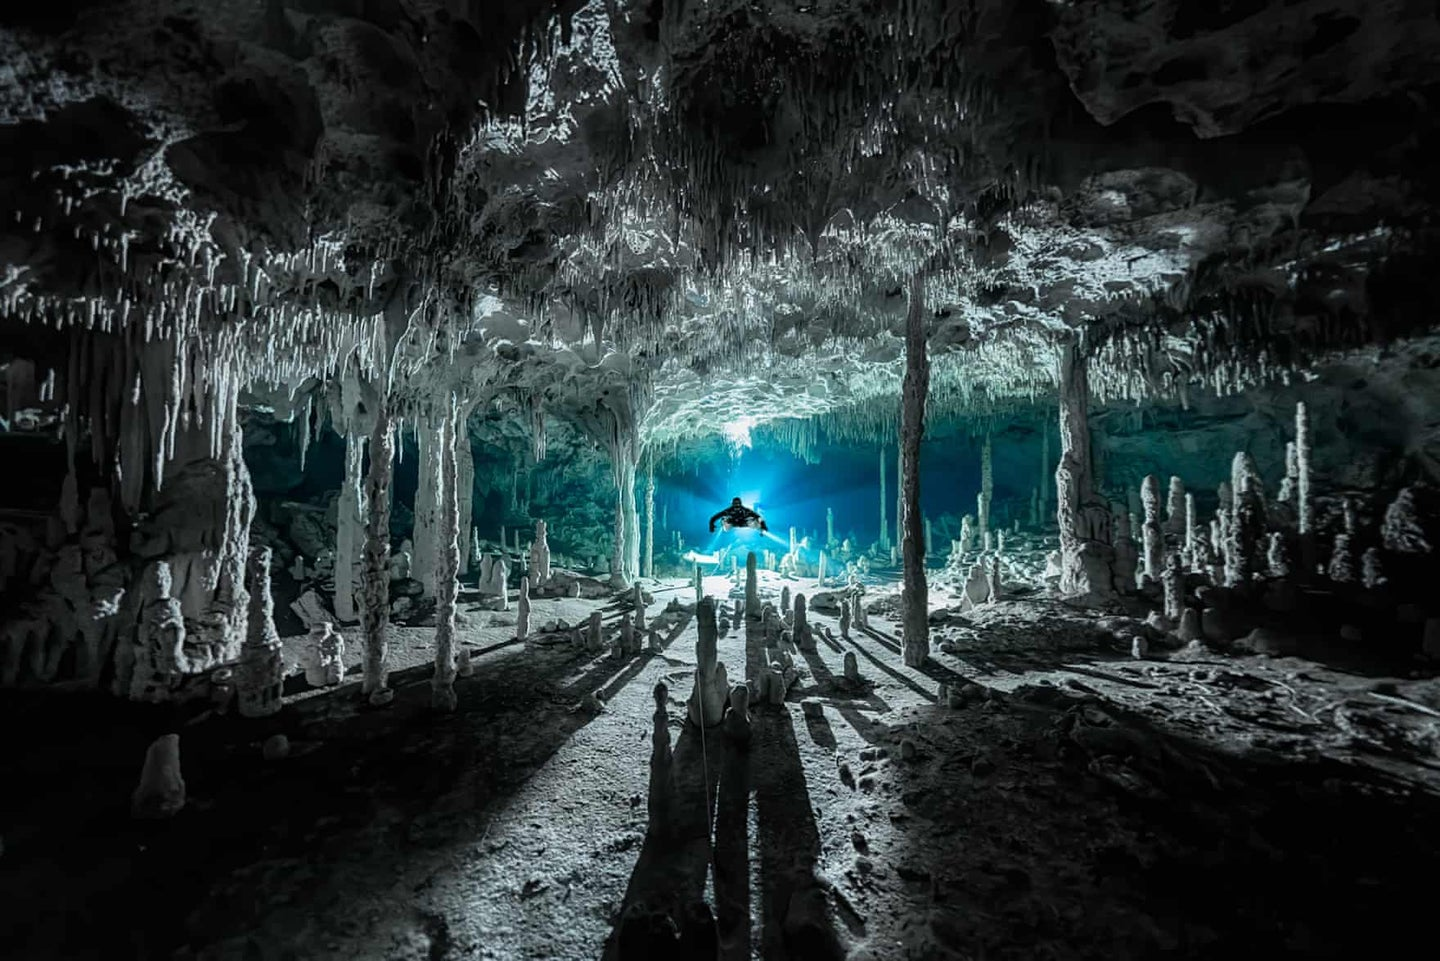 Speleothems cast long shadows at Cenote dos Pisos in Mexico